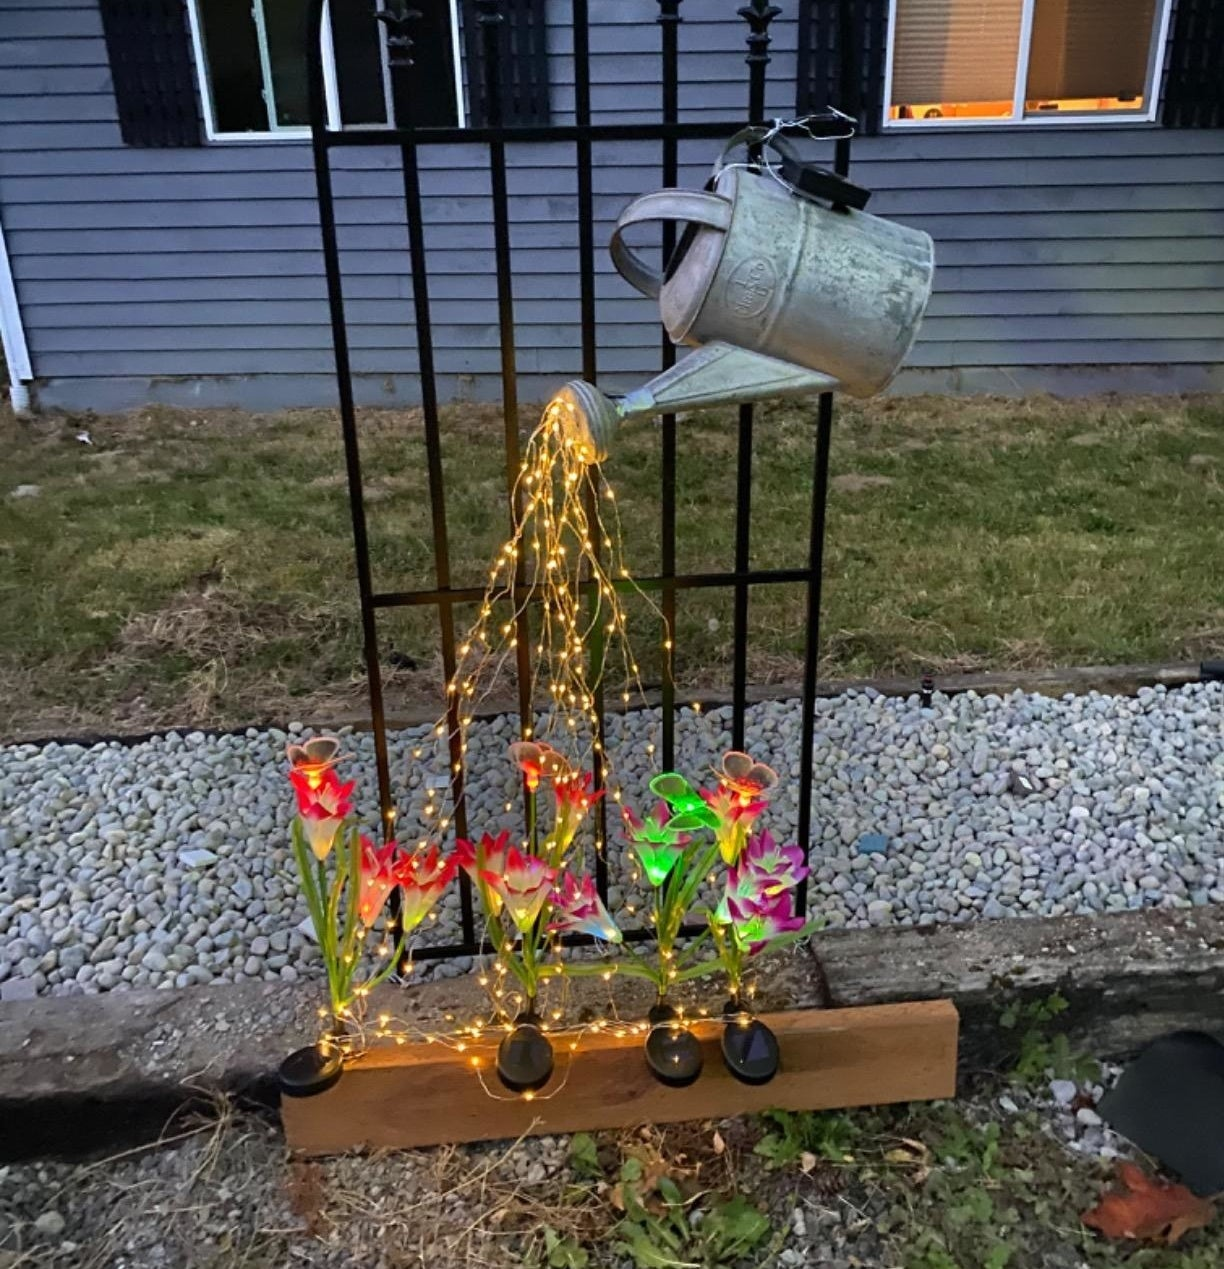 A reviewer photo of the fairy lights falling down from a watering can onto solar powered flowers